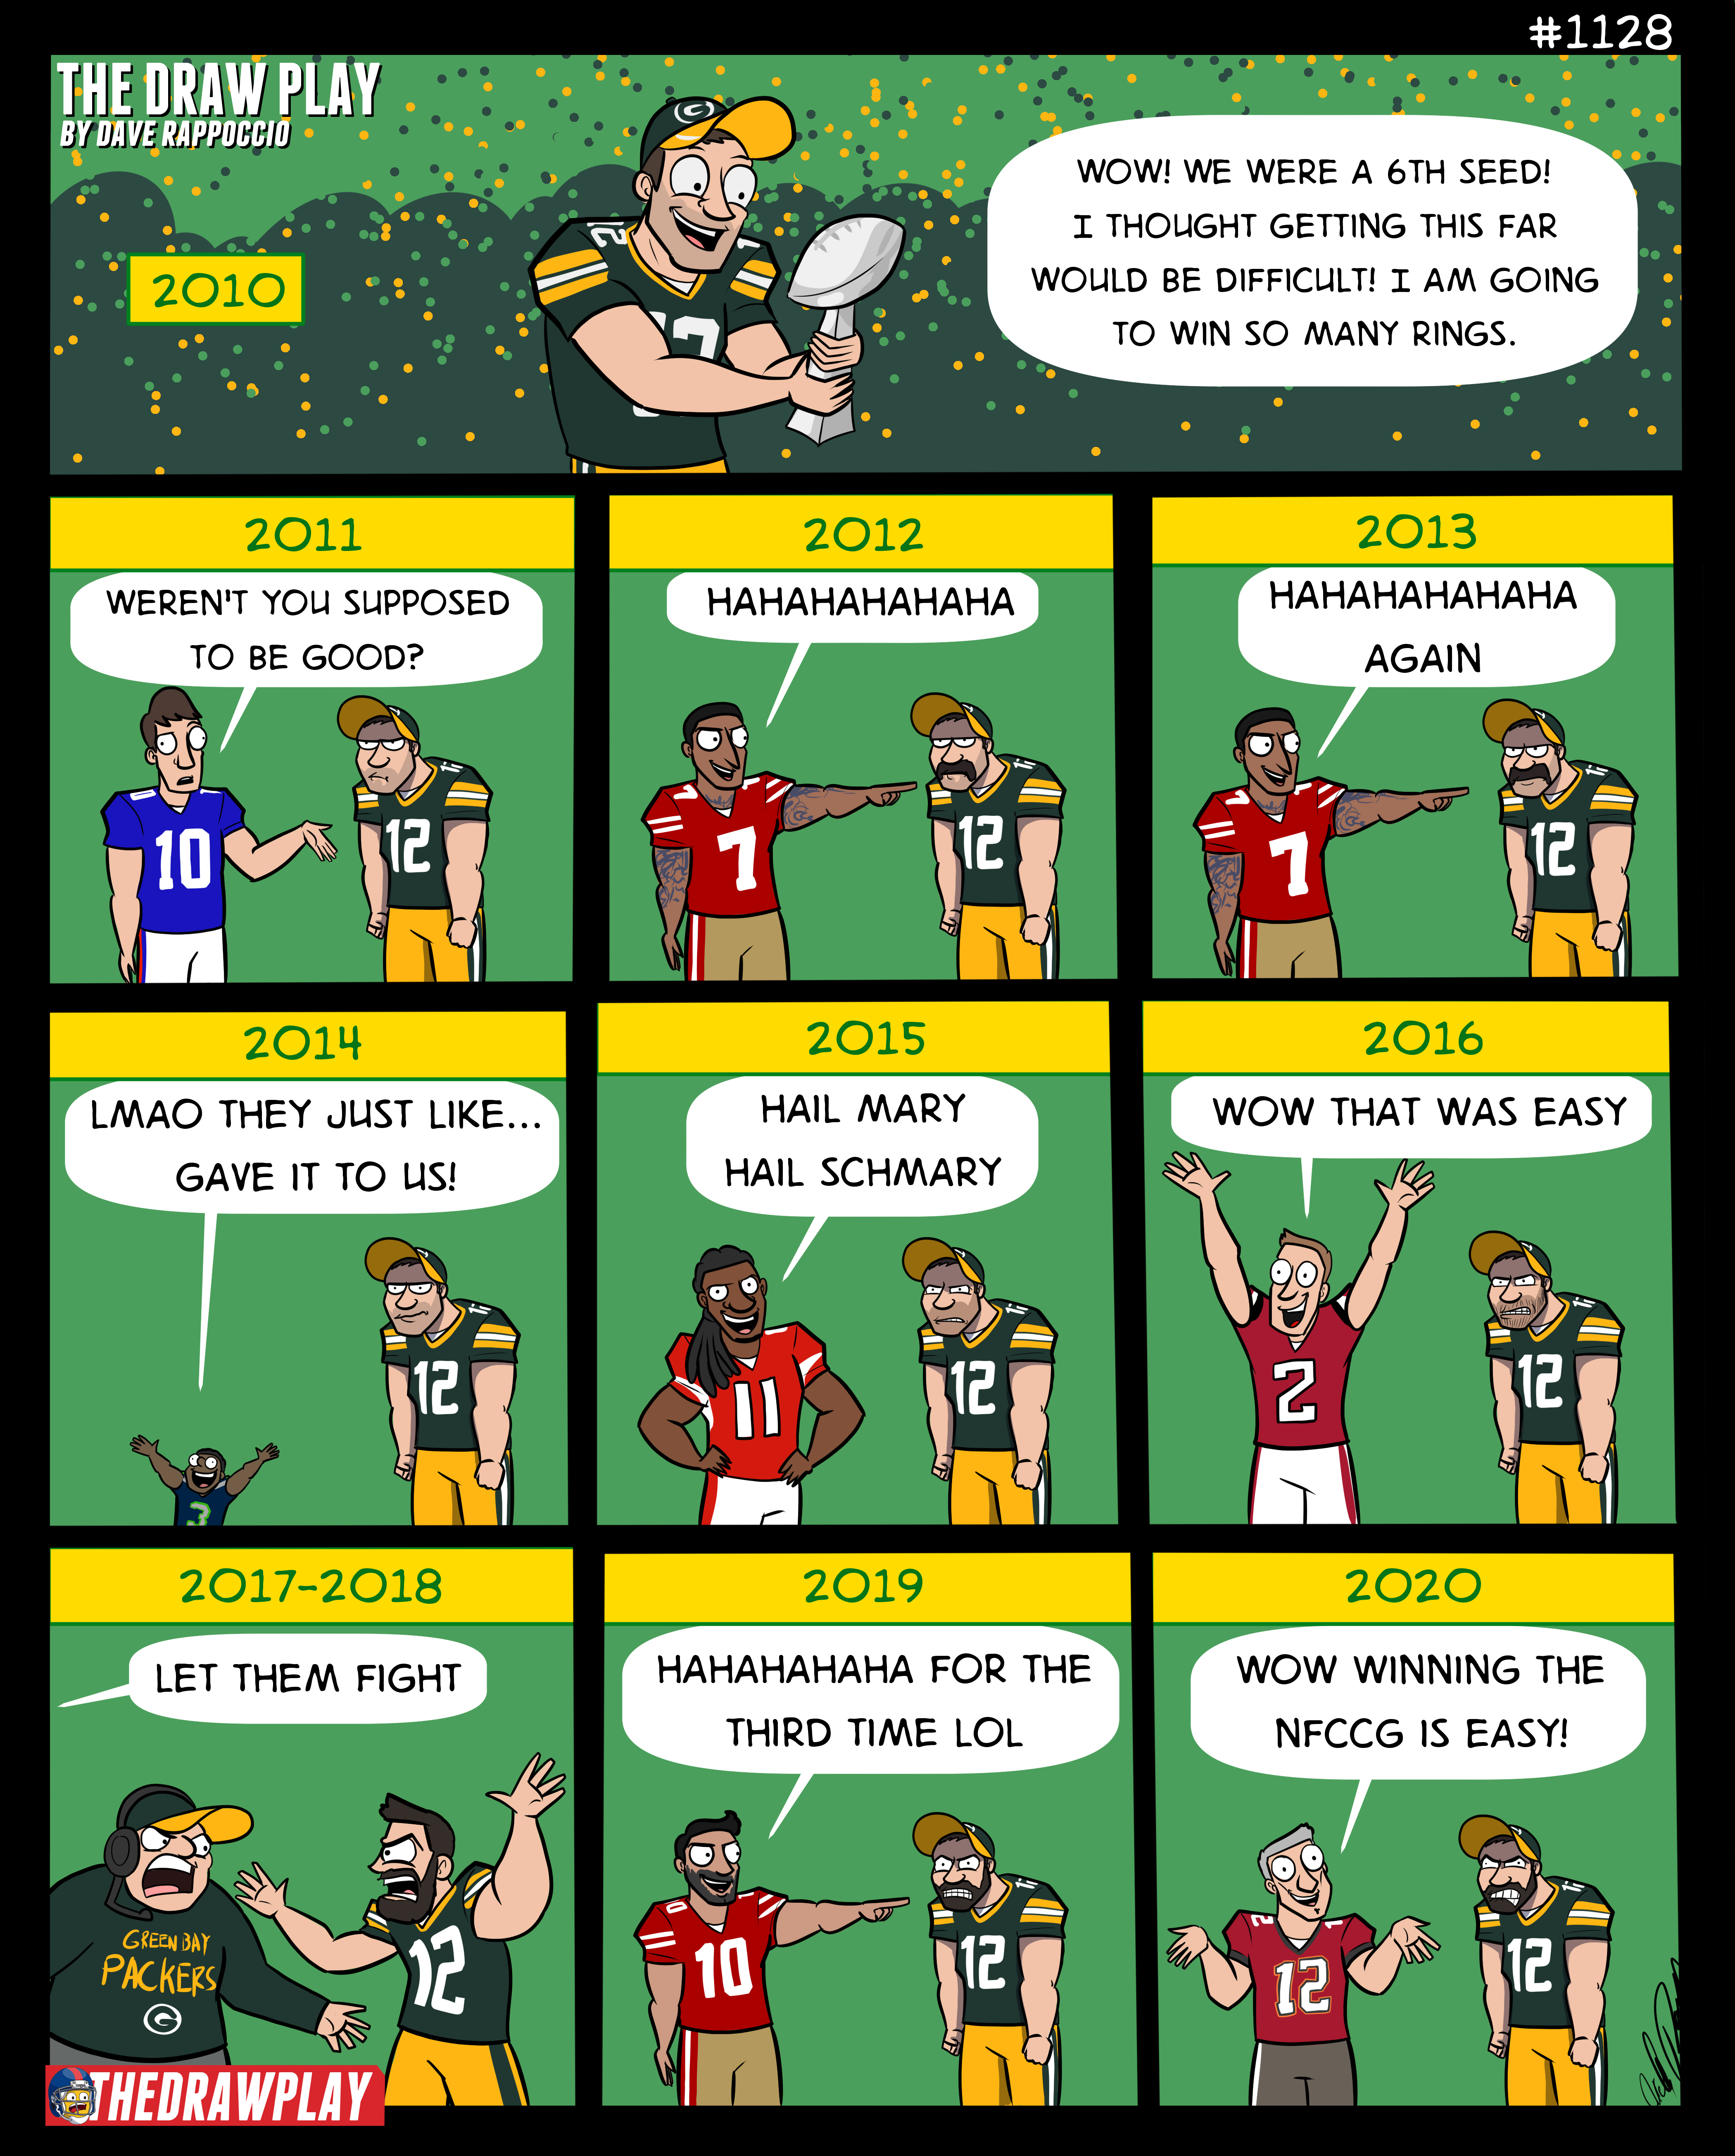 The Packers Decade of Failure